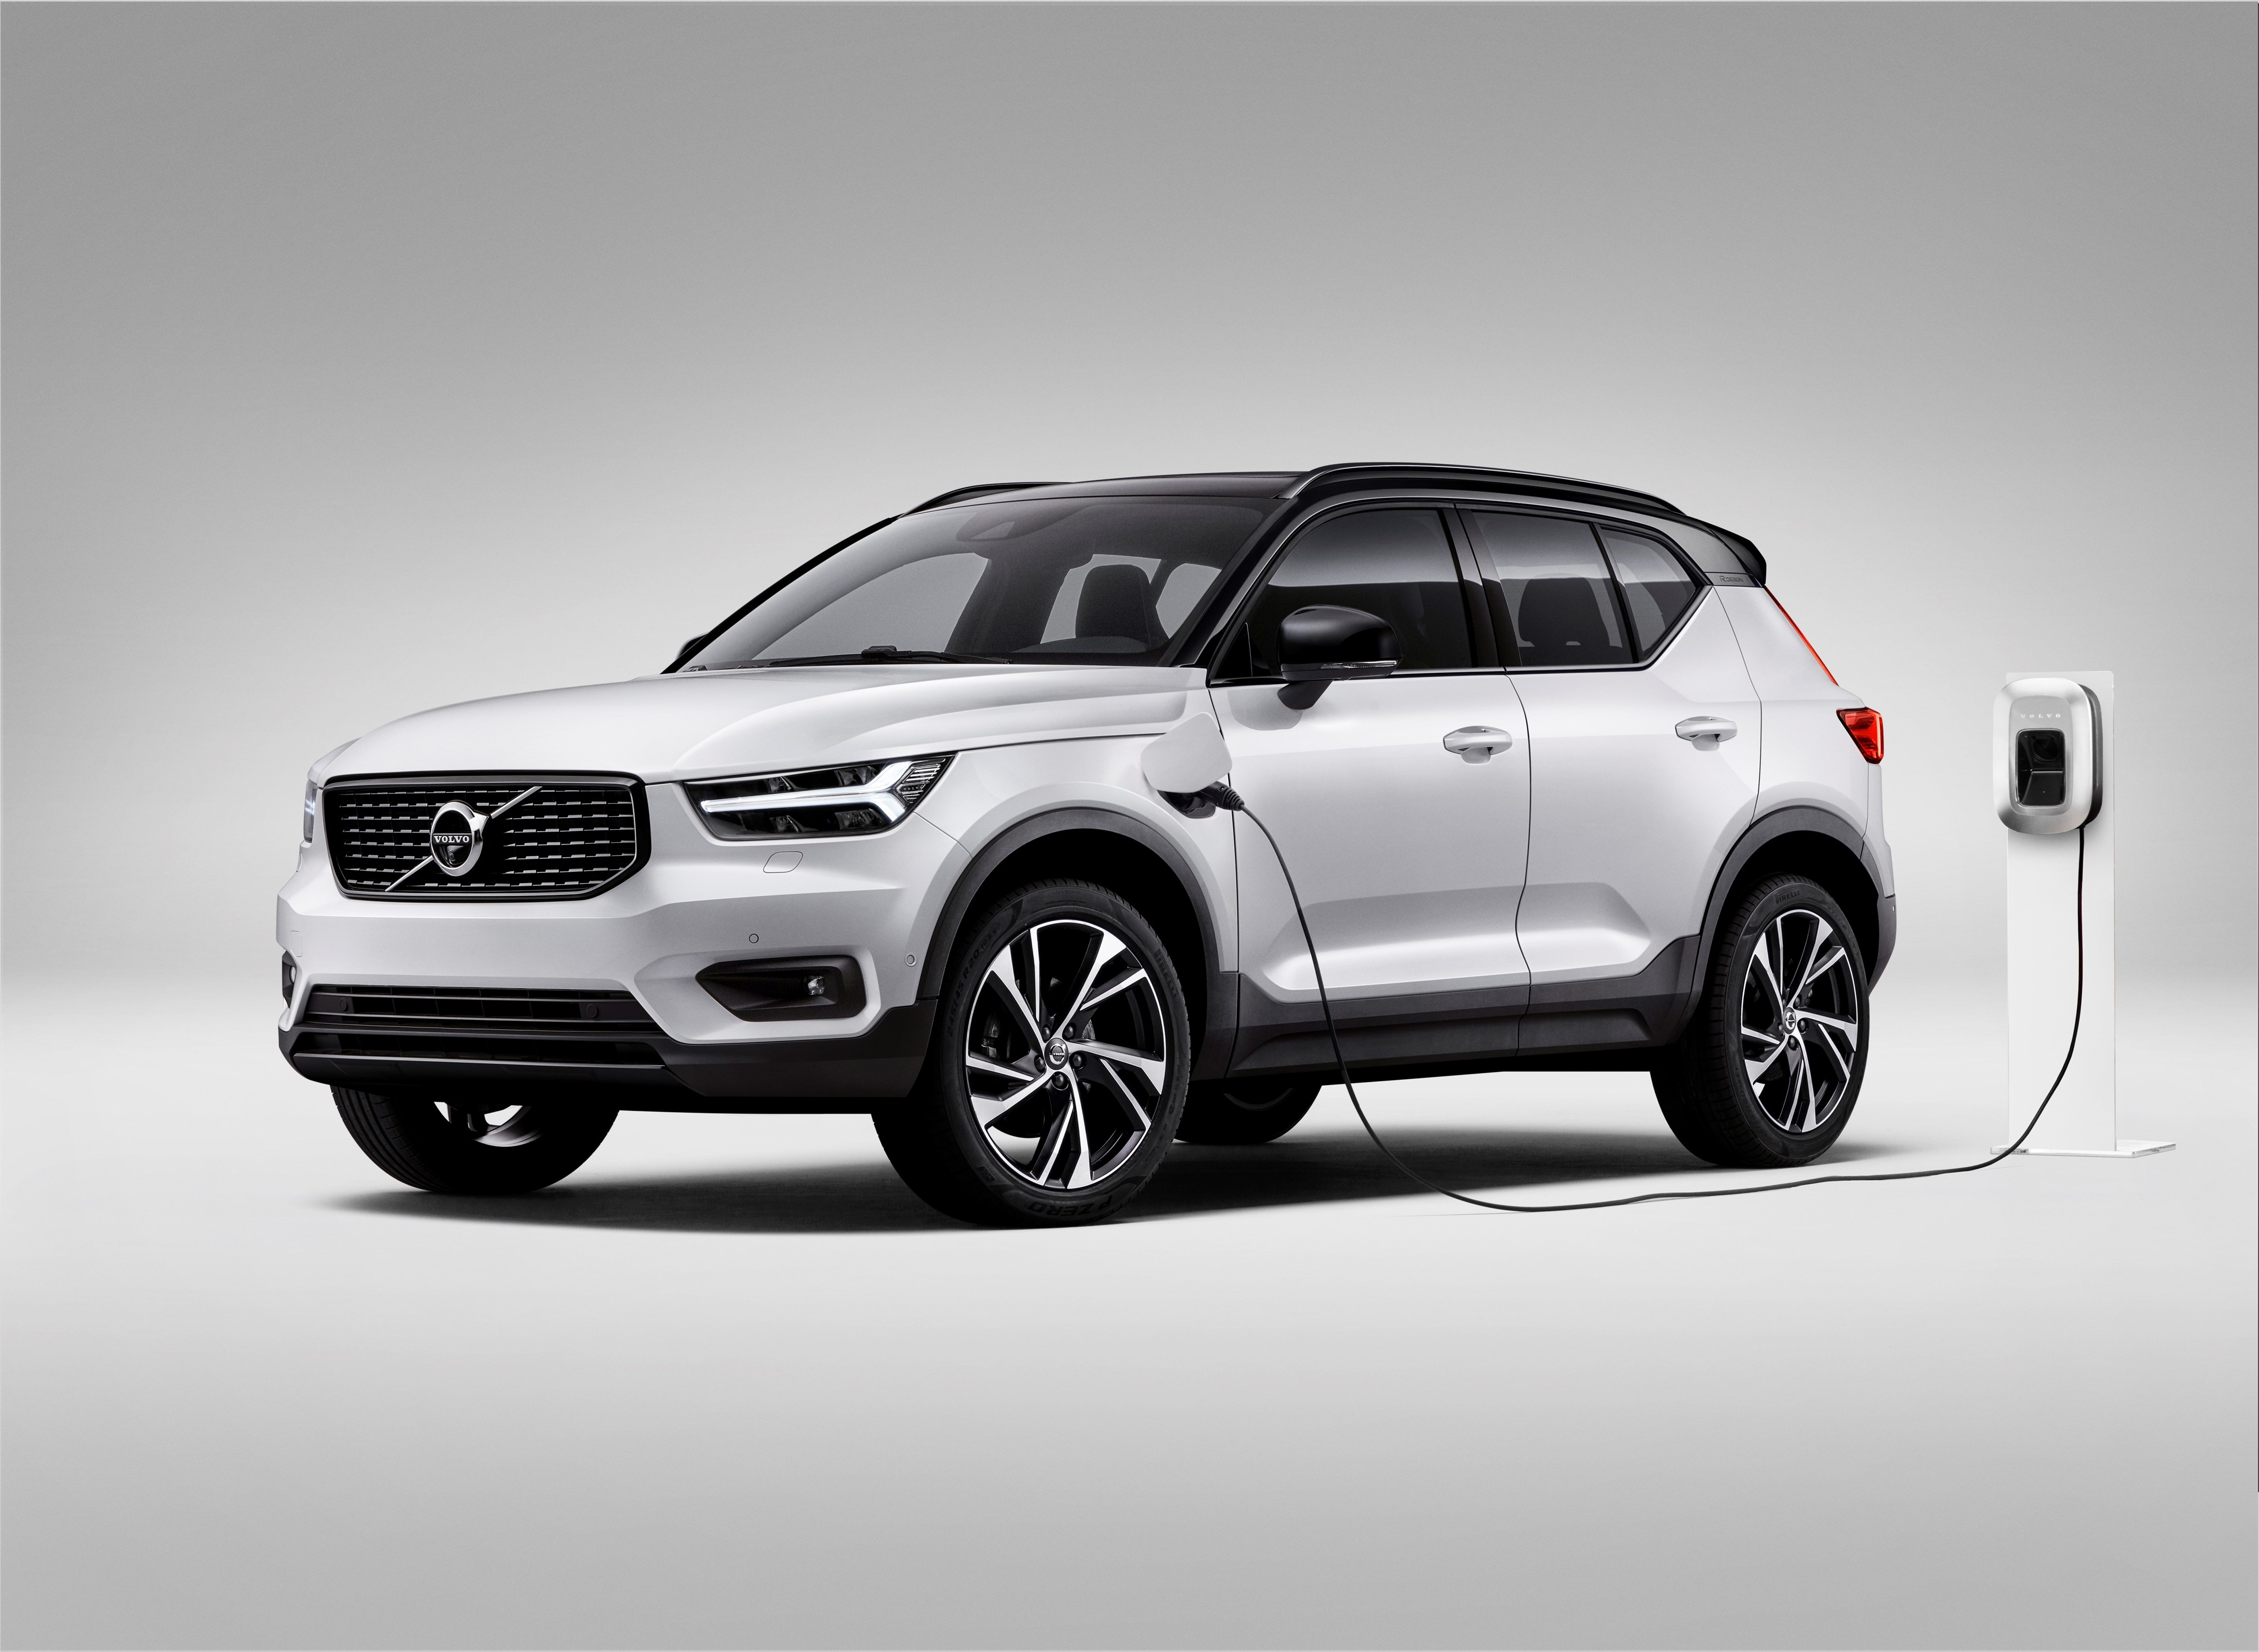 volvo xc40 bient t disponible en hybride rechargeable t5 twin engine. Black Bedroom Furniture Sets. Home Design Ideas